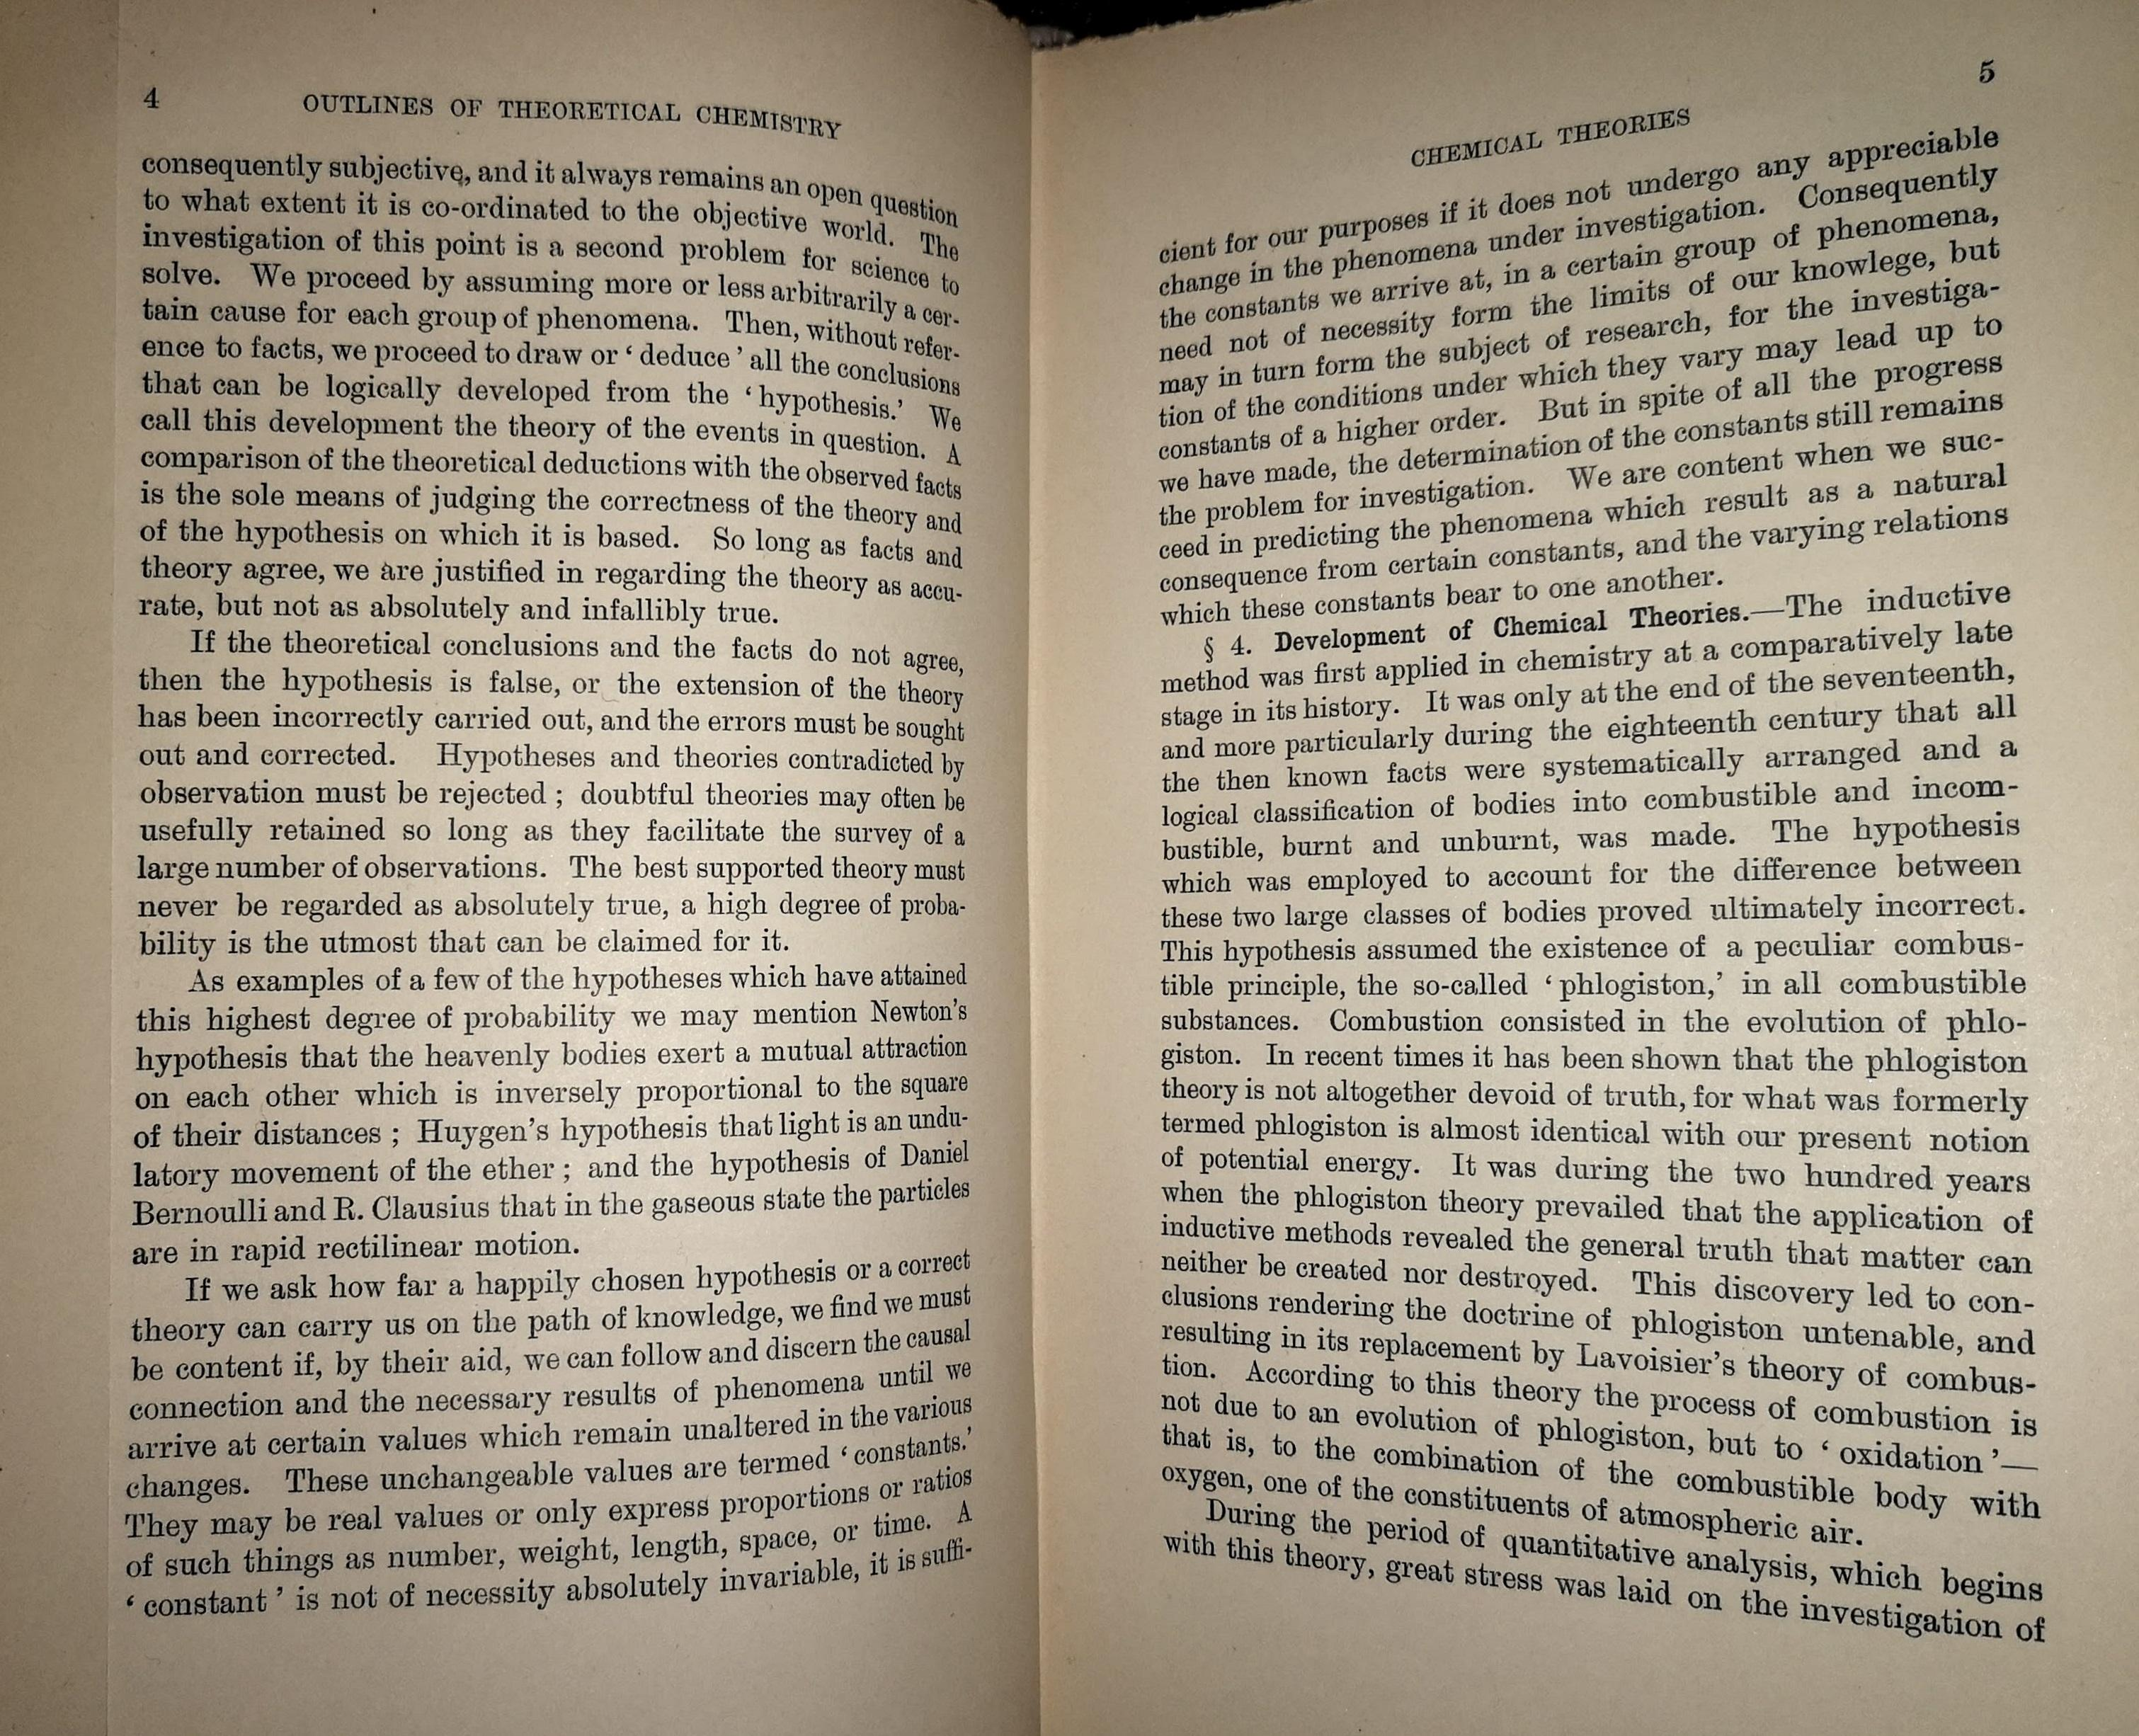 """""""Introduction to Meyer's Outlines of Theoretical Chemistry (1892)."""